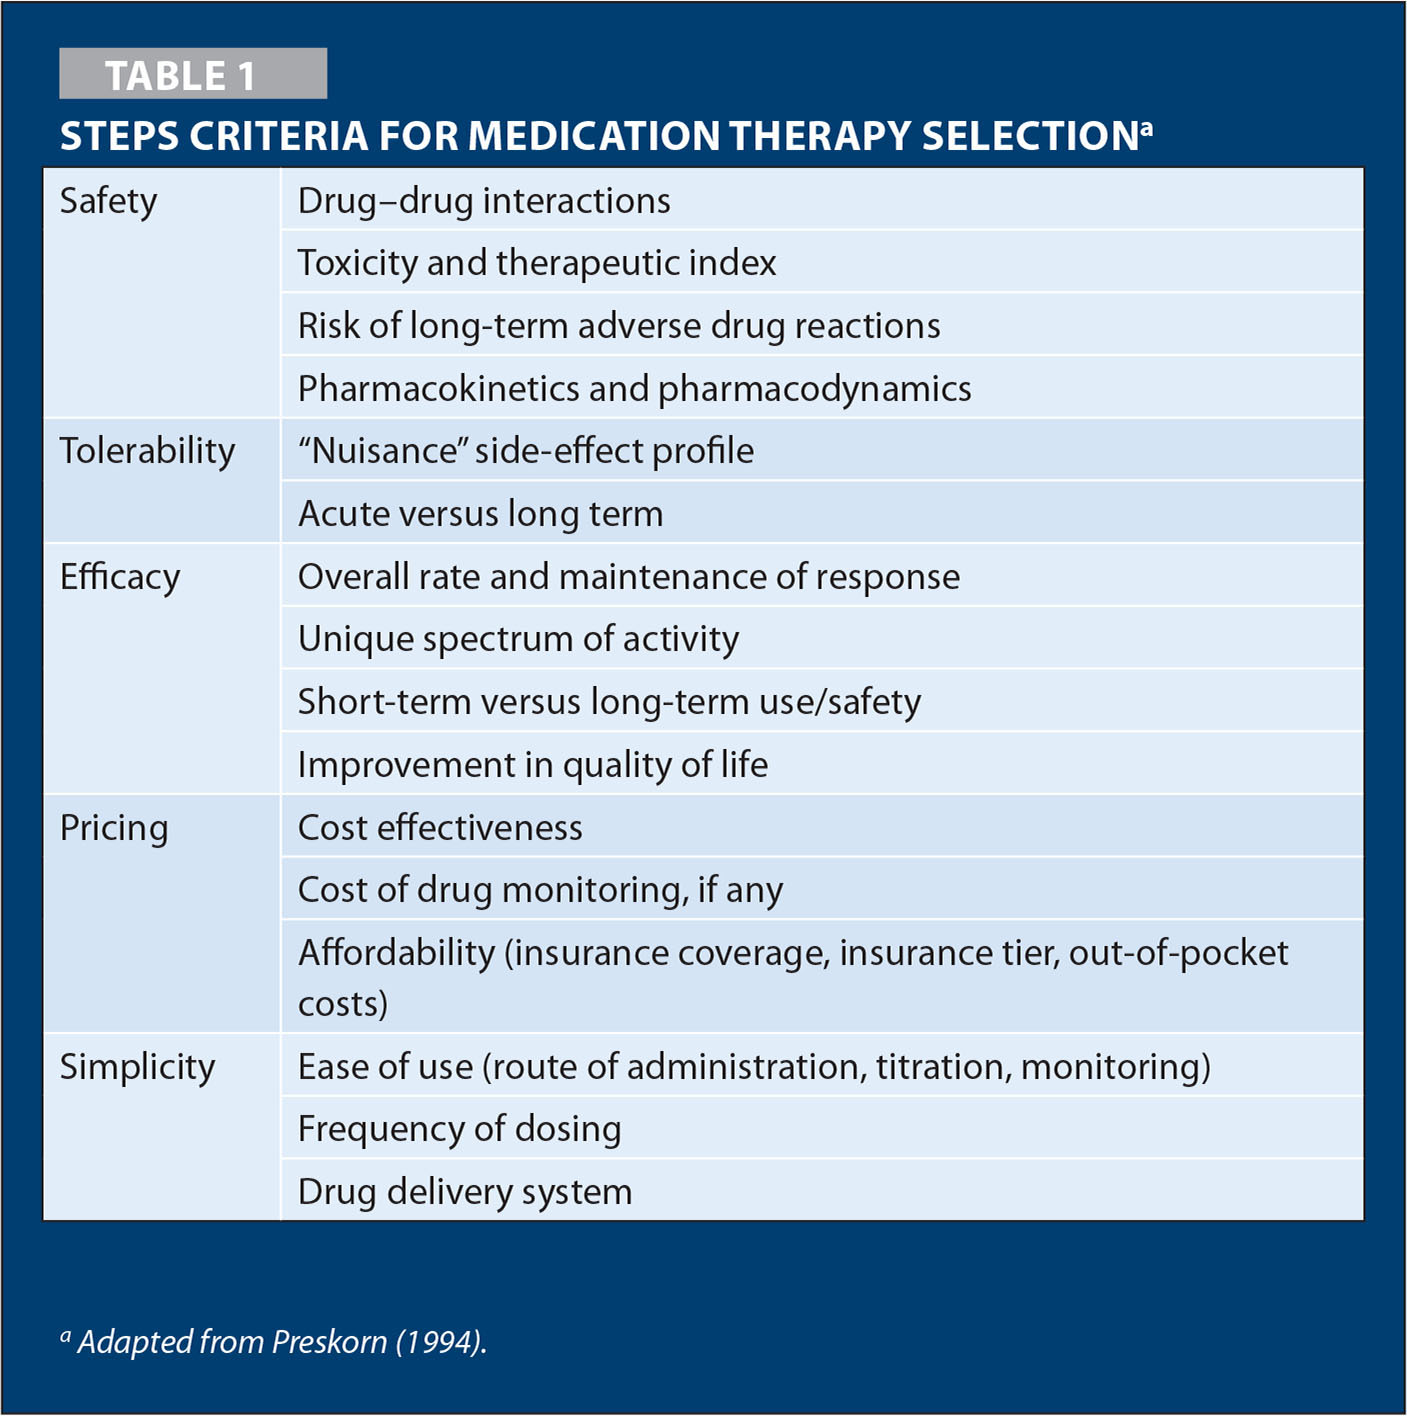 Steps Criteria for Medication Therapy Selectiona